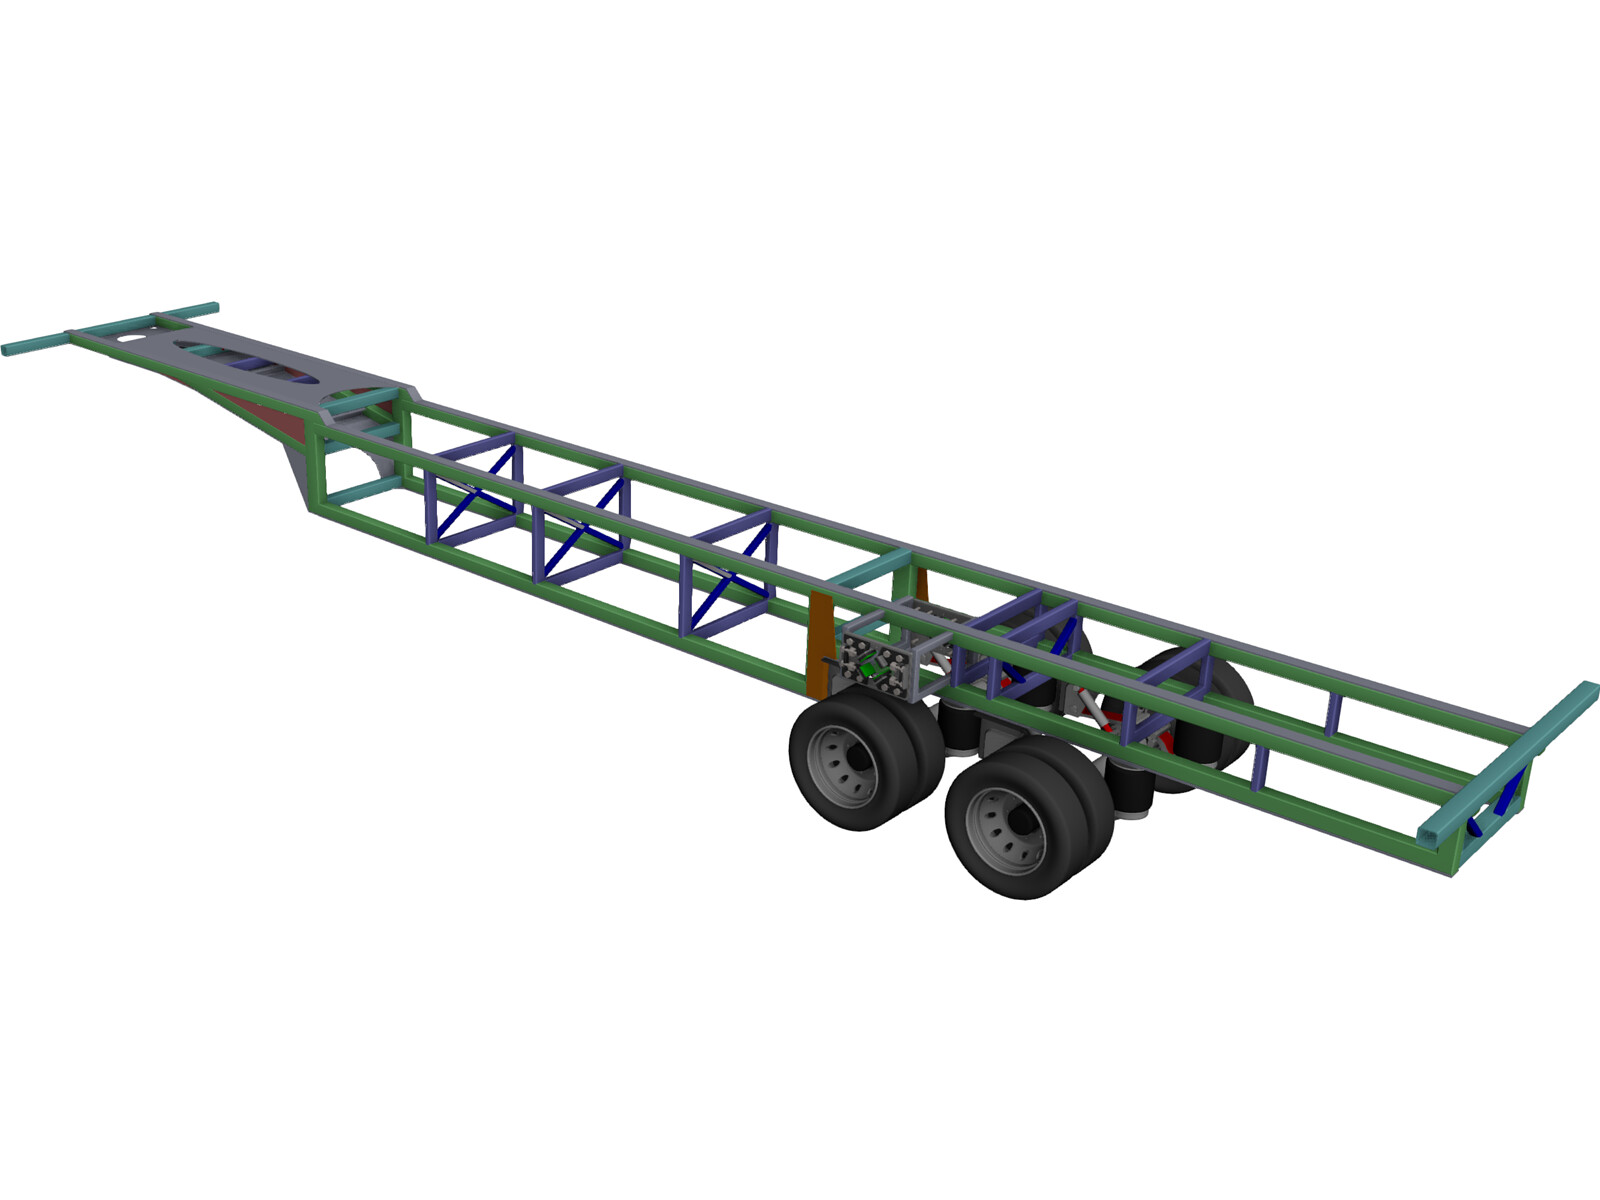 Prototype Trailer Chassis with Suspension 13.6m 3D CAD Model